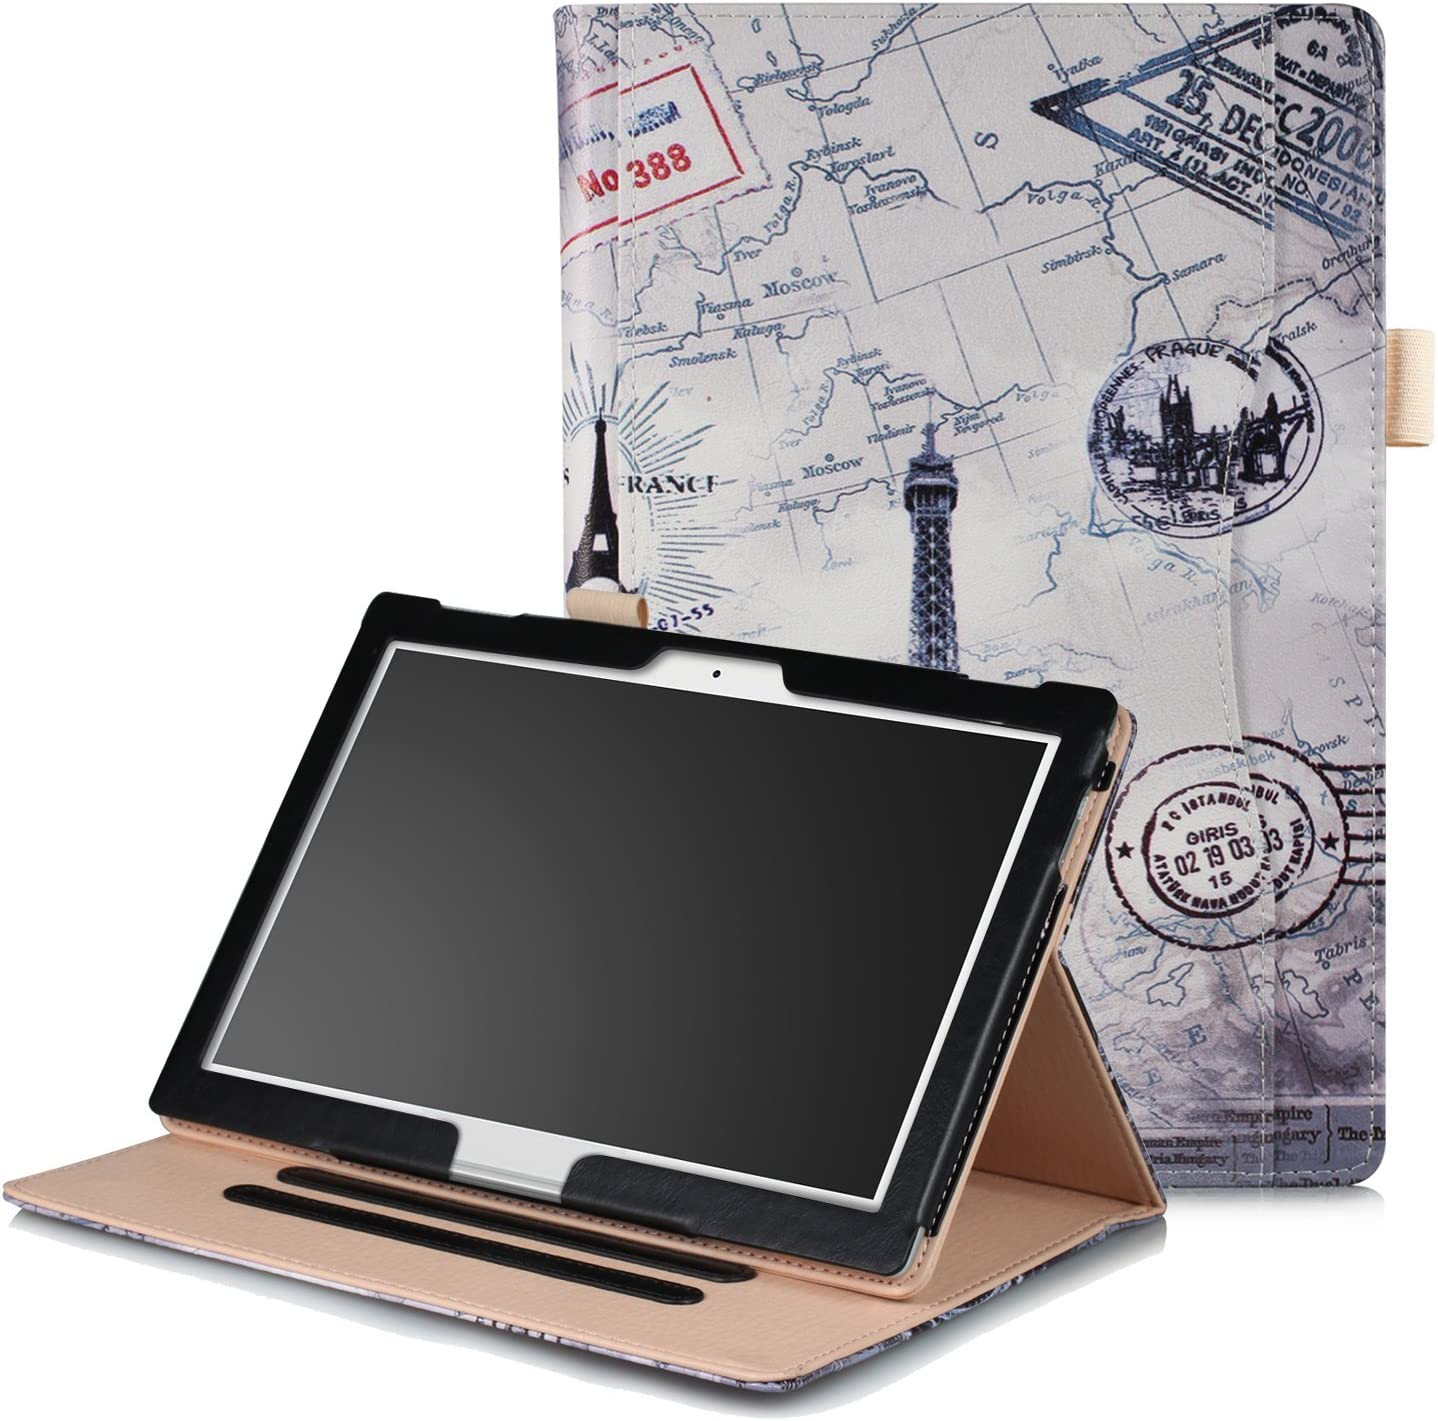 XBE Multifunctional Case for Lenovo Tab4 10 / Tab4 10 Plus / E10 X104 with Multiple Viewing Angles Built-in Hand holder , Eiffel